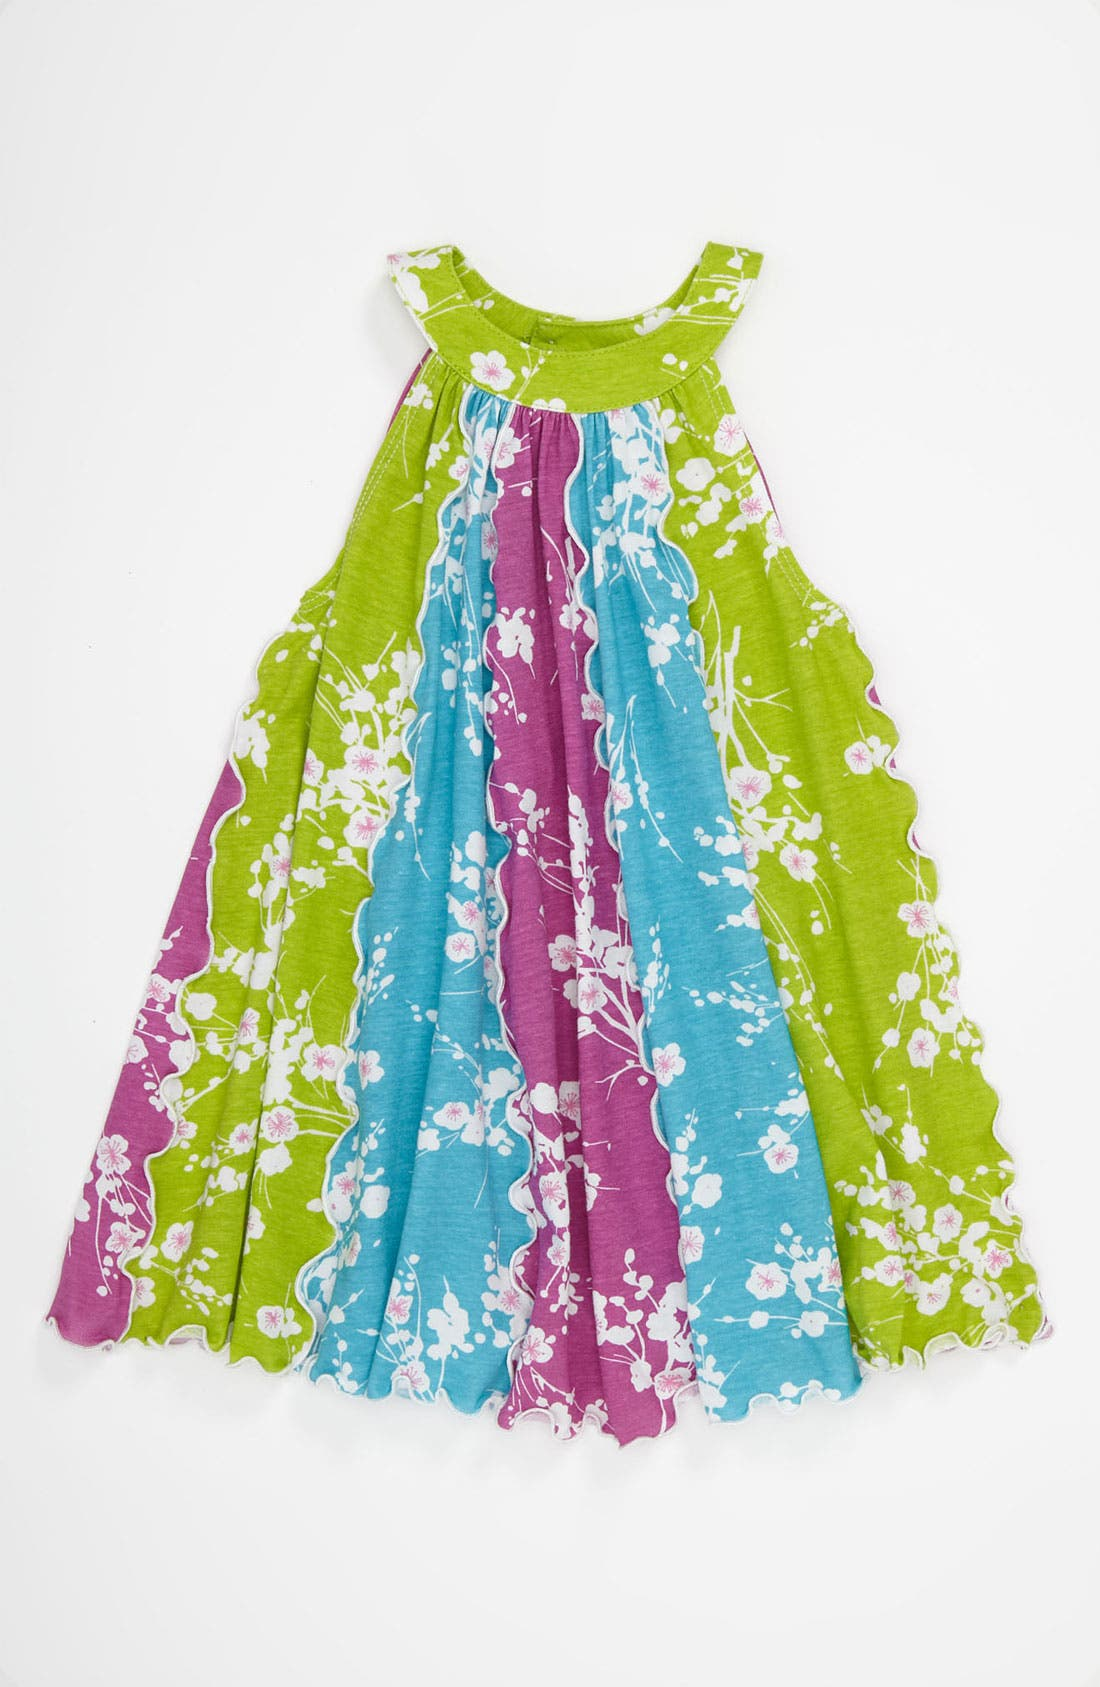 Alternate Image 1 Selected - Love U Lots 'Cherry Blossom' Dress (Toddler)